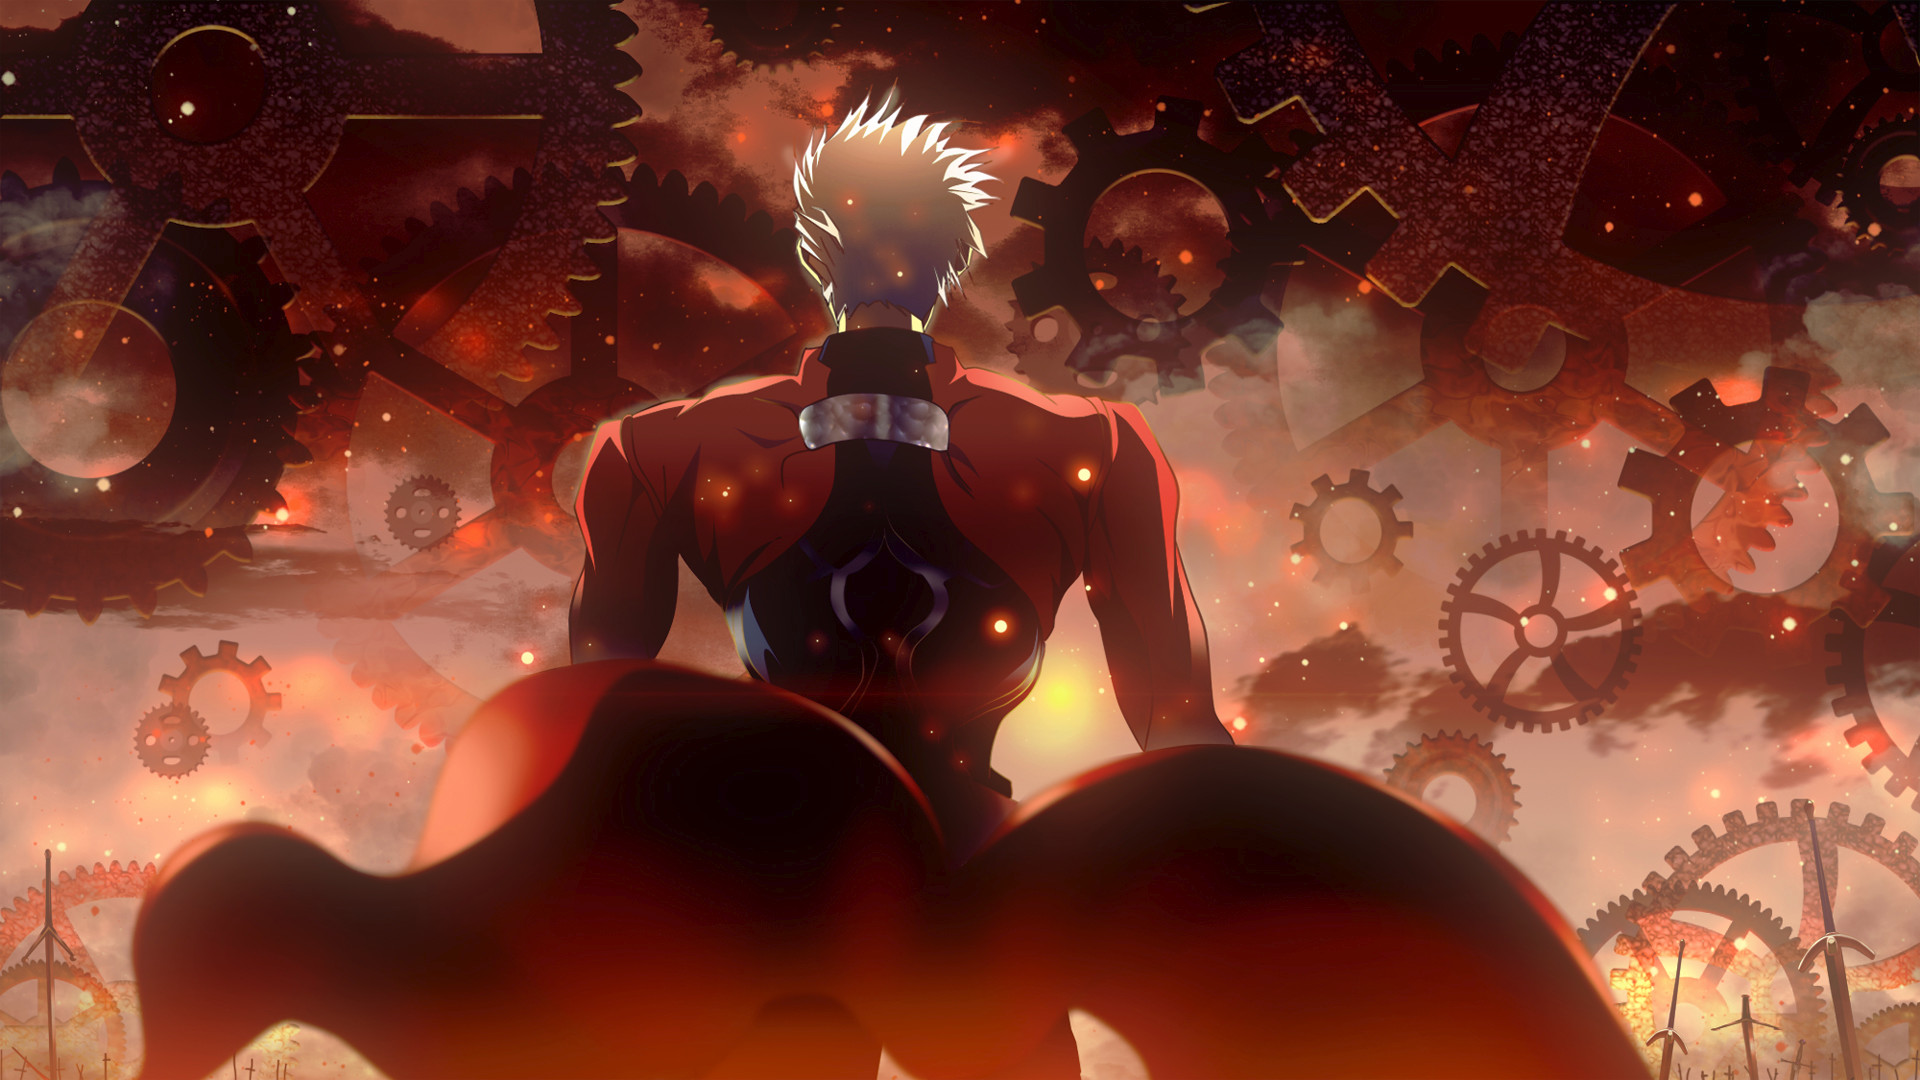 Fate Stay Night Archer Images As Wallpaper HD